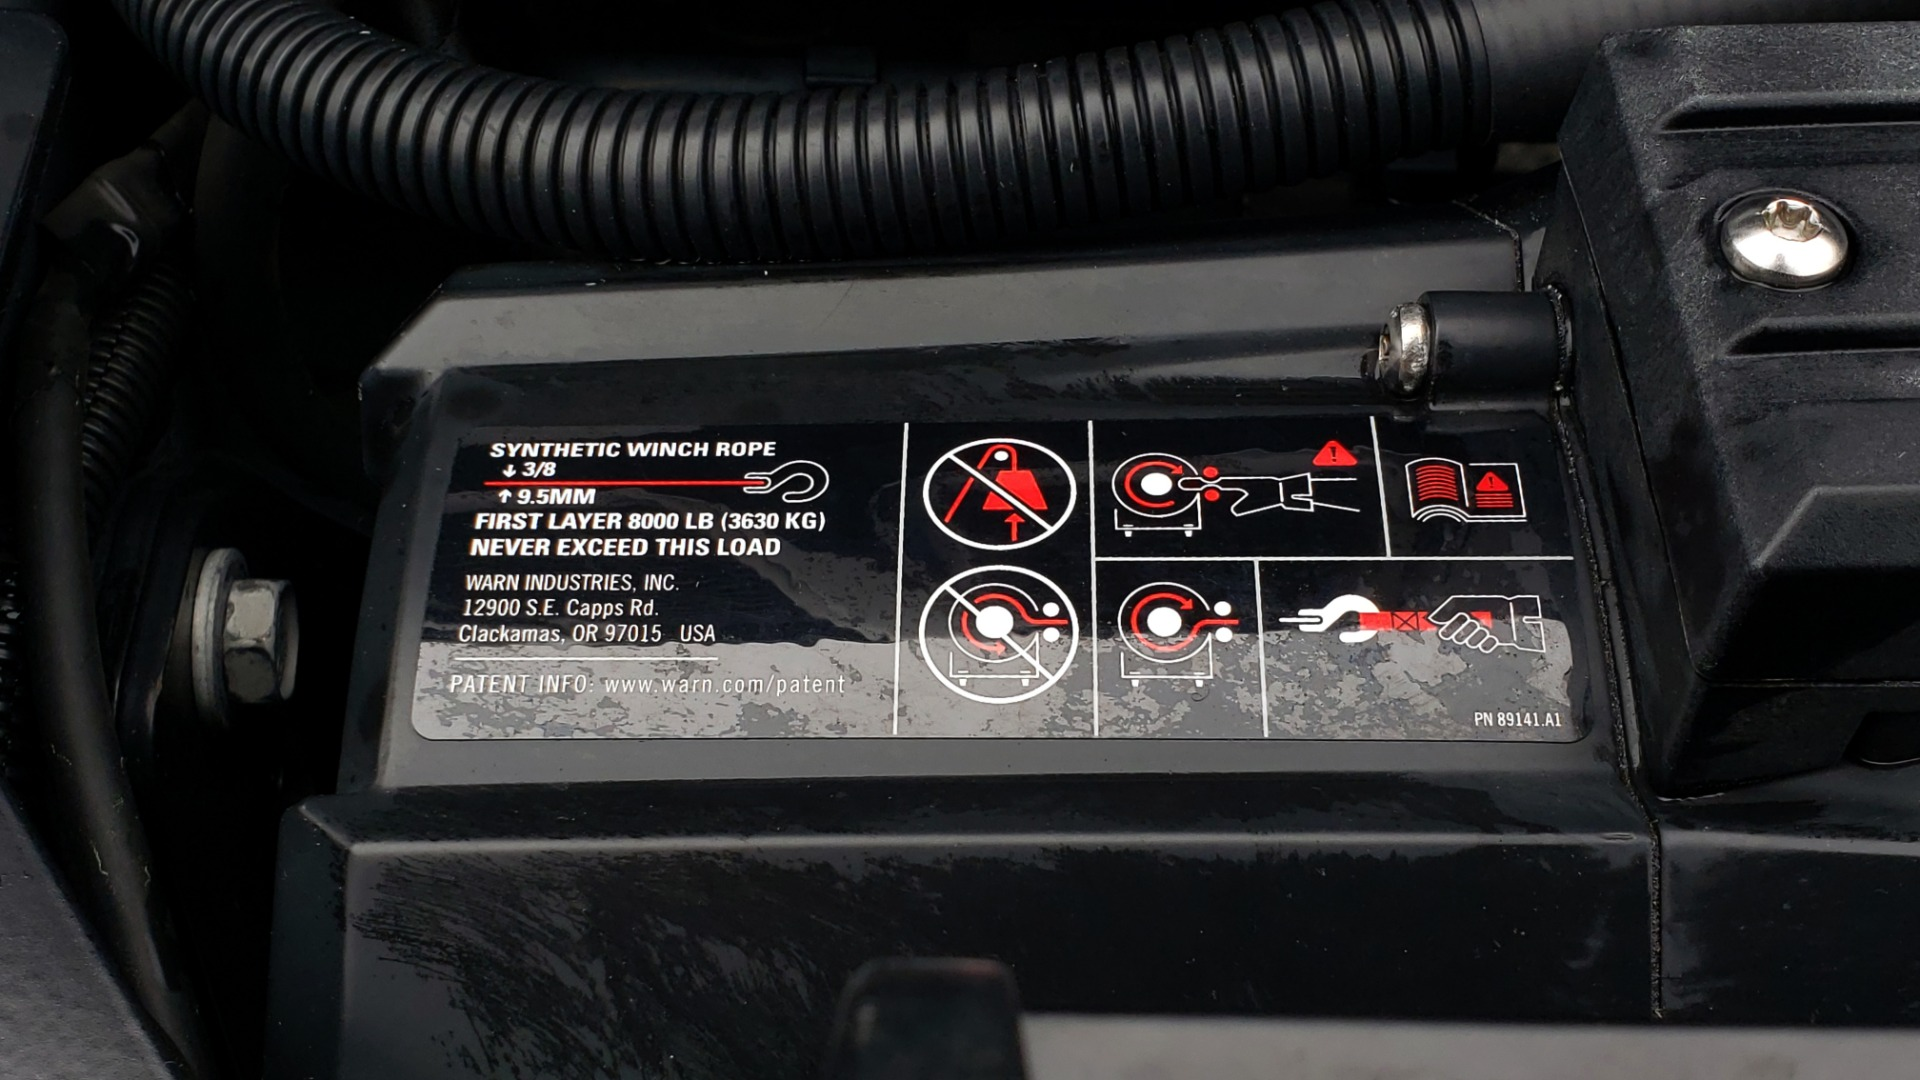 Used 2019 Jeep WRANGLER UNLIMITED RUBICON 4WD / V6 / 8-SPD AUTO / NAV / PWR TOP / REARVIEW for sale Sold at Formula Imports in Charlotte NC 28227 28